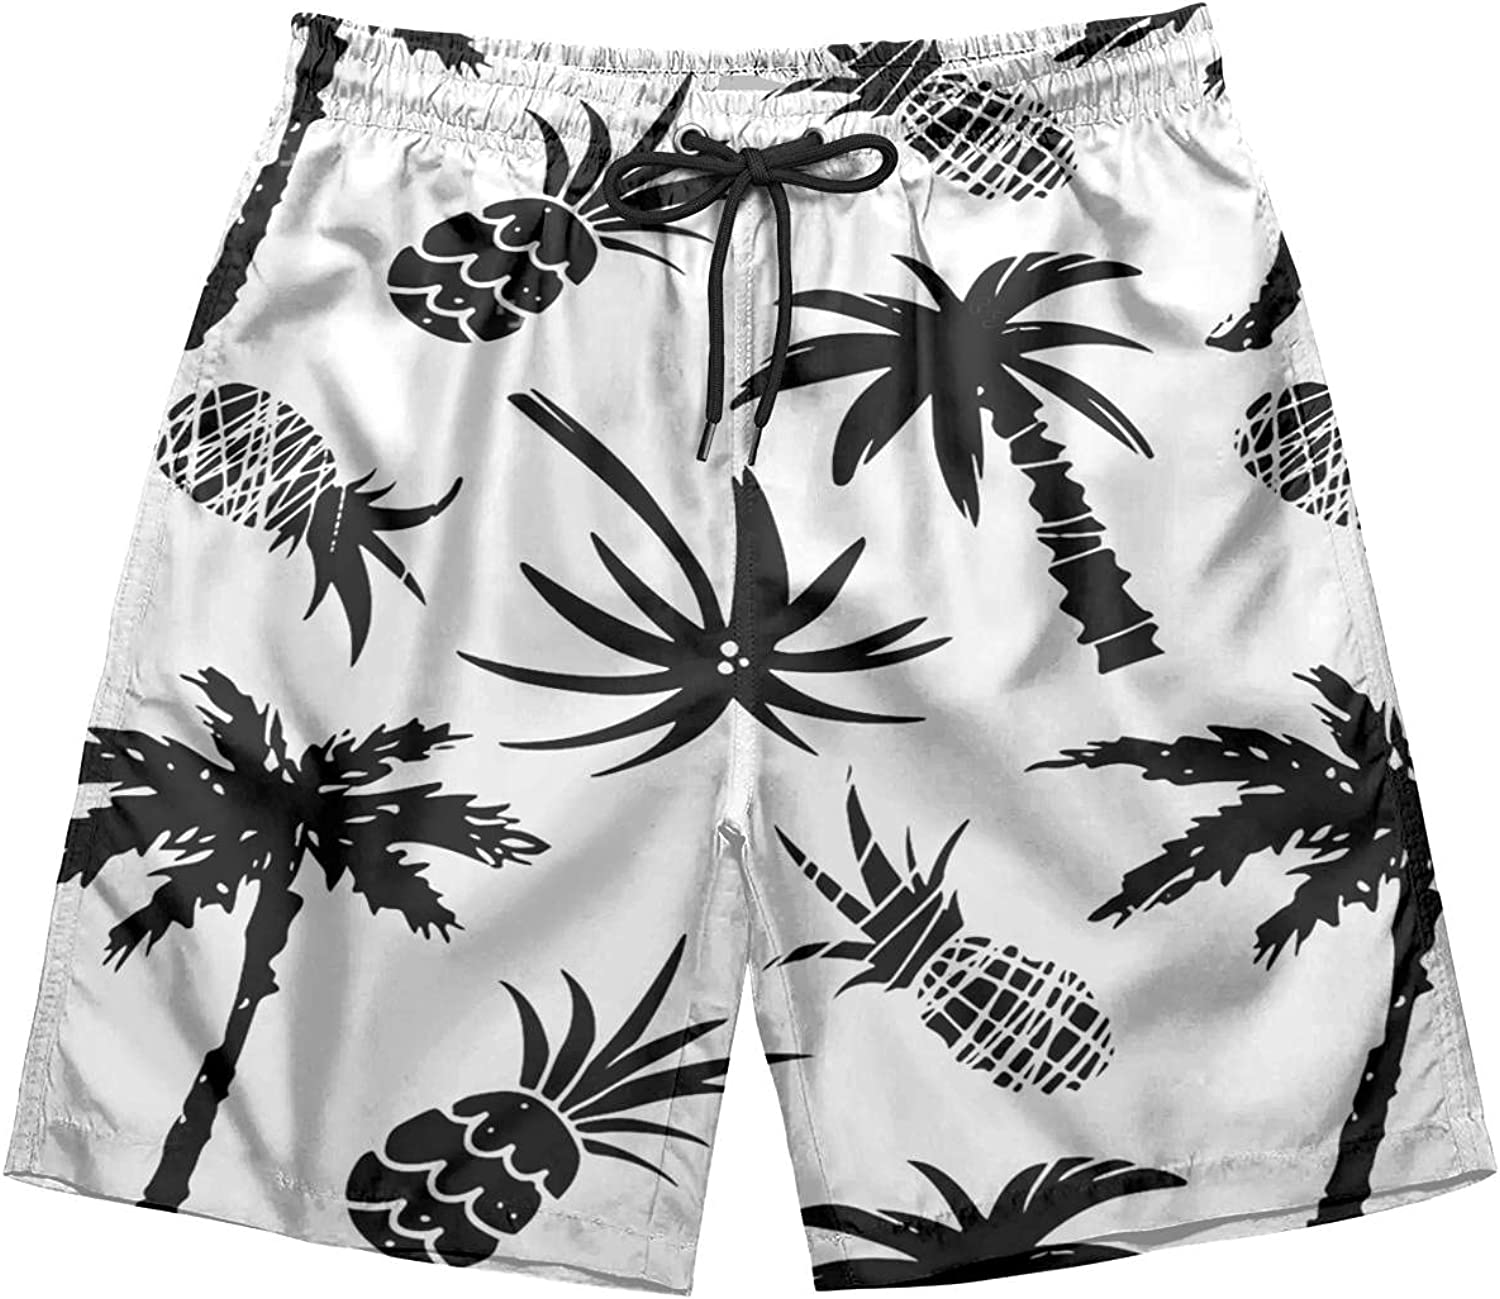 Adult Vintage Swim Trunks Quick Dry Nautical Boat Anchors Helm Lighthouses Beach Shorts with Waist Drawstring Swimwear